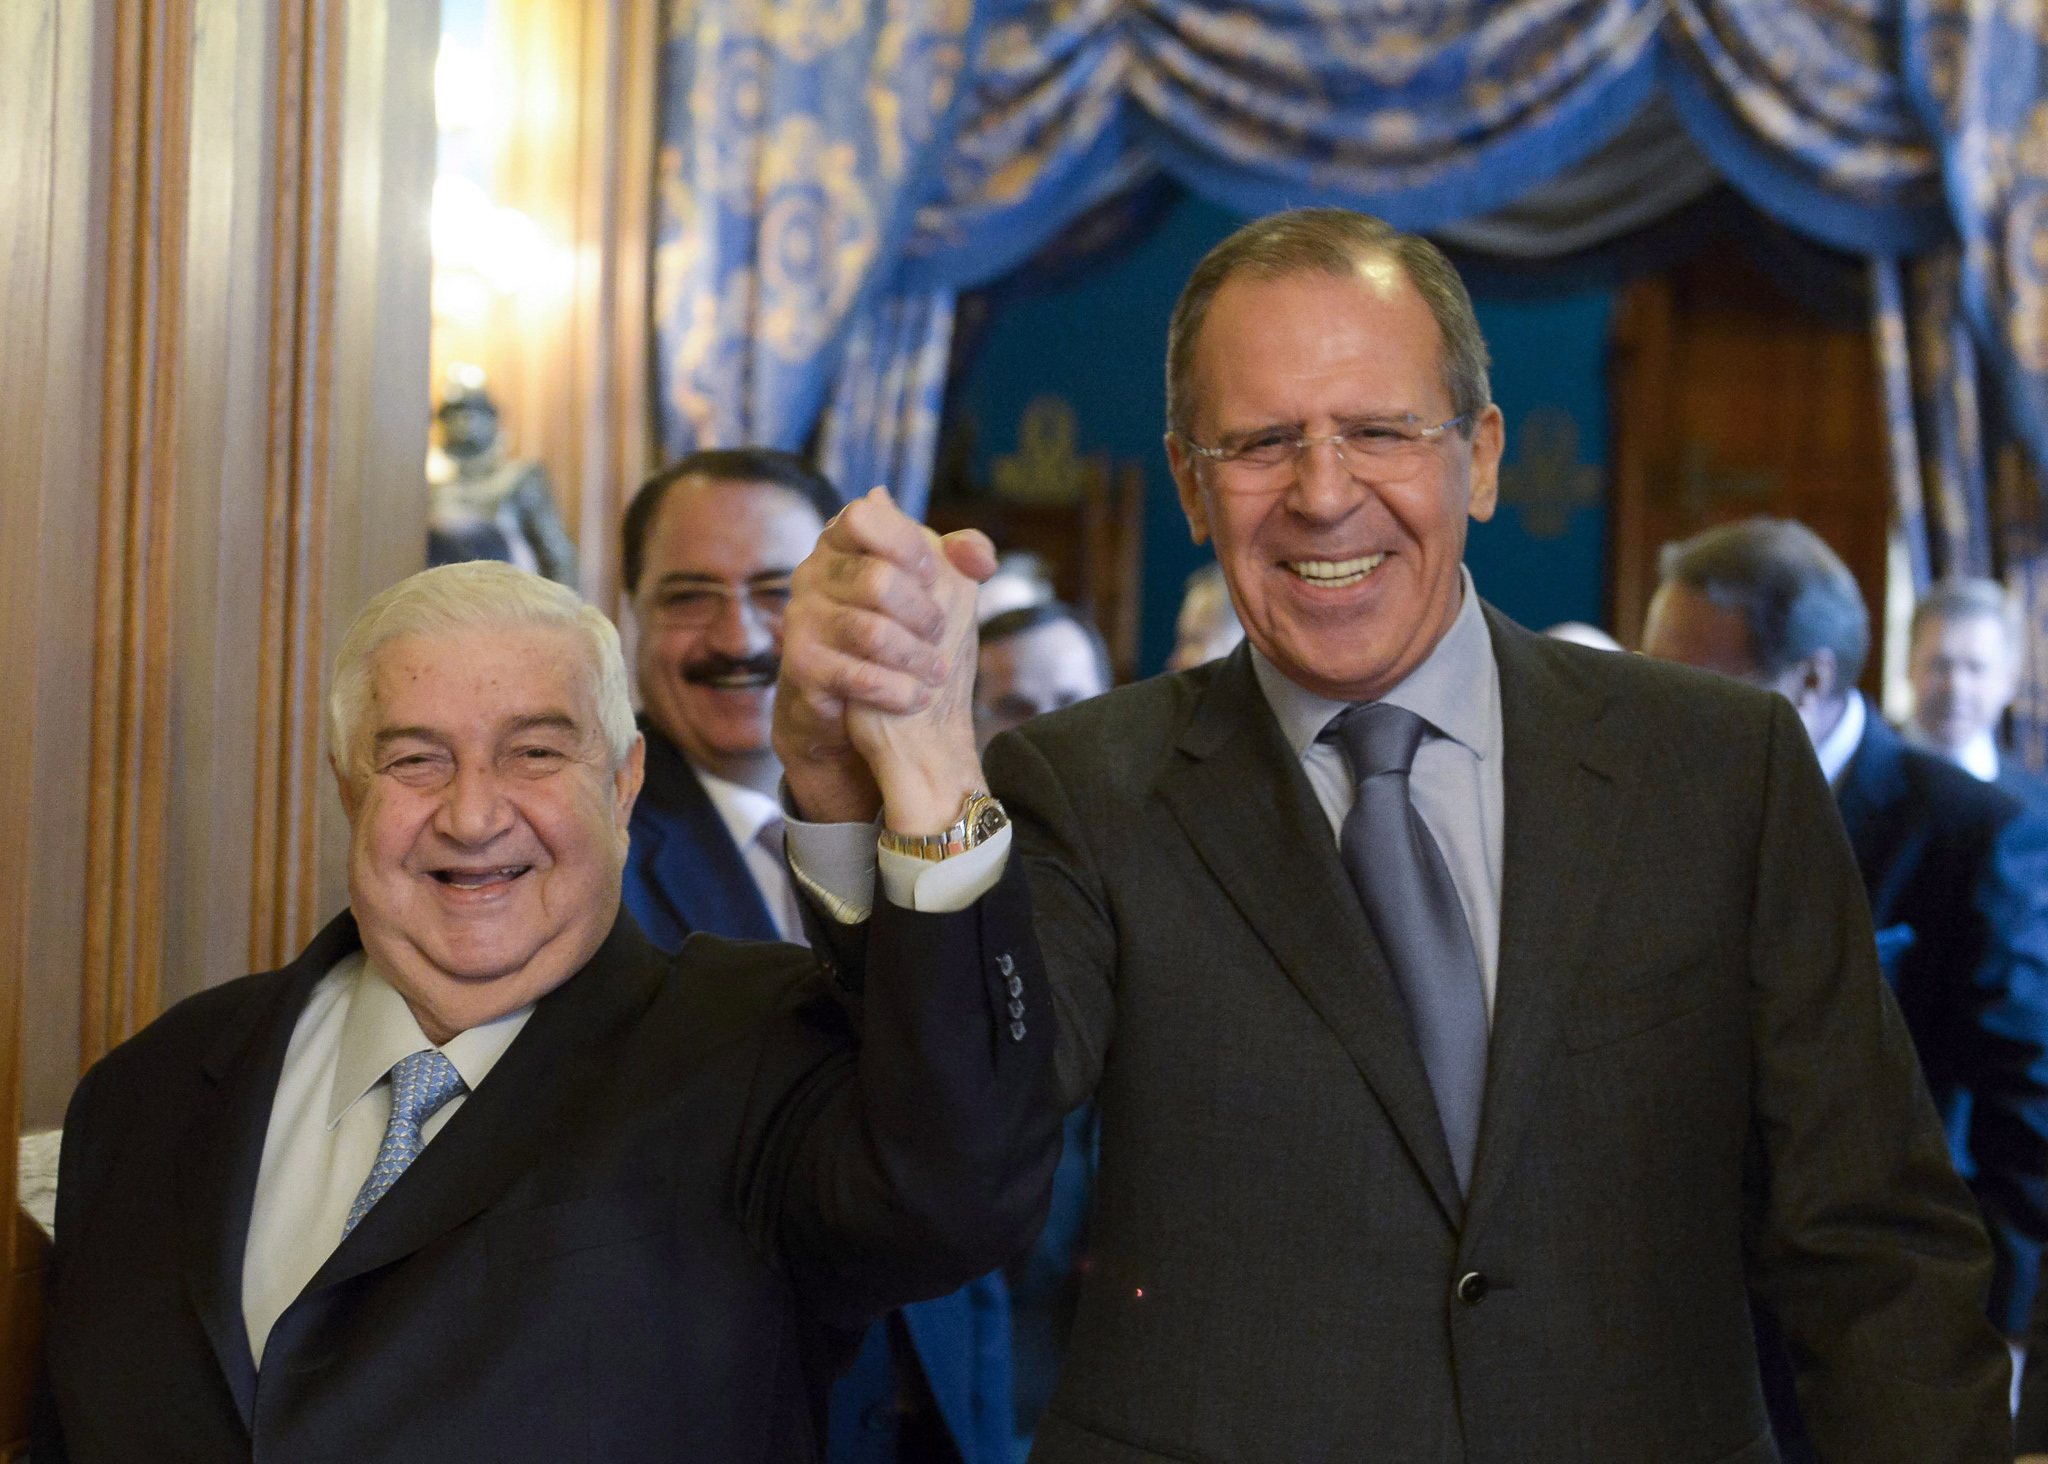 Russian Foreign Minister Sergey Lavrov, right, and Syrian Foreign Minister Walid al-Moallem enter a hall hand in hand for their talks in Moscow, Russia, Friday, Jan. 17.